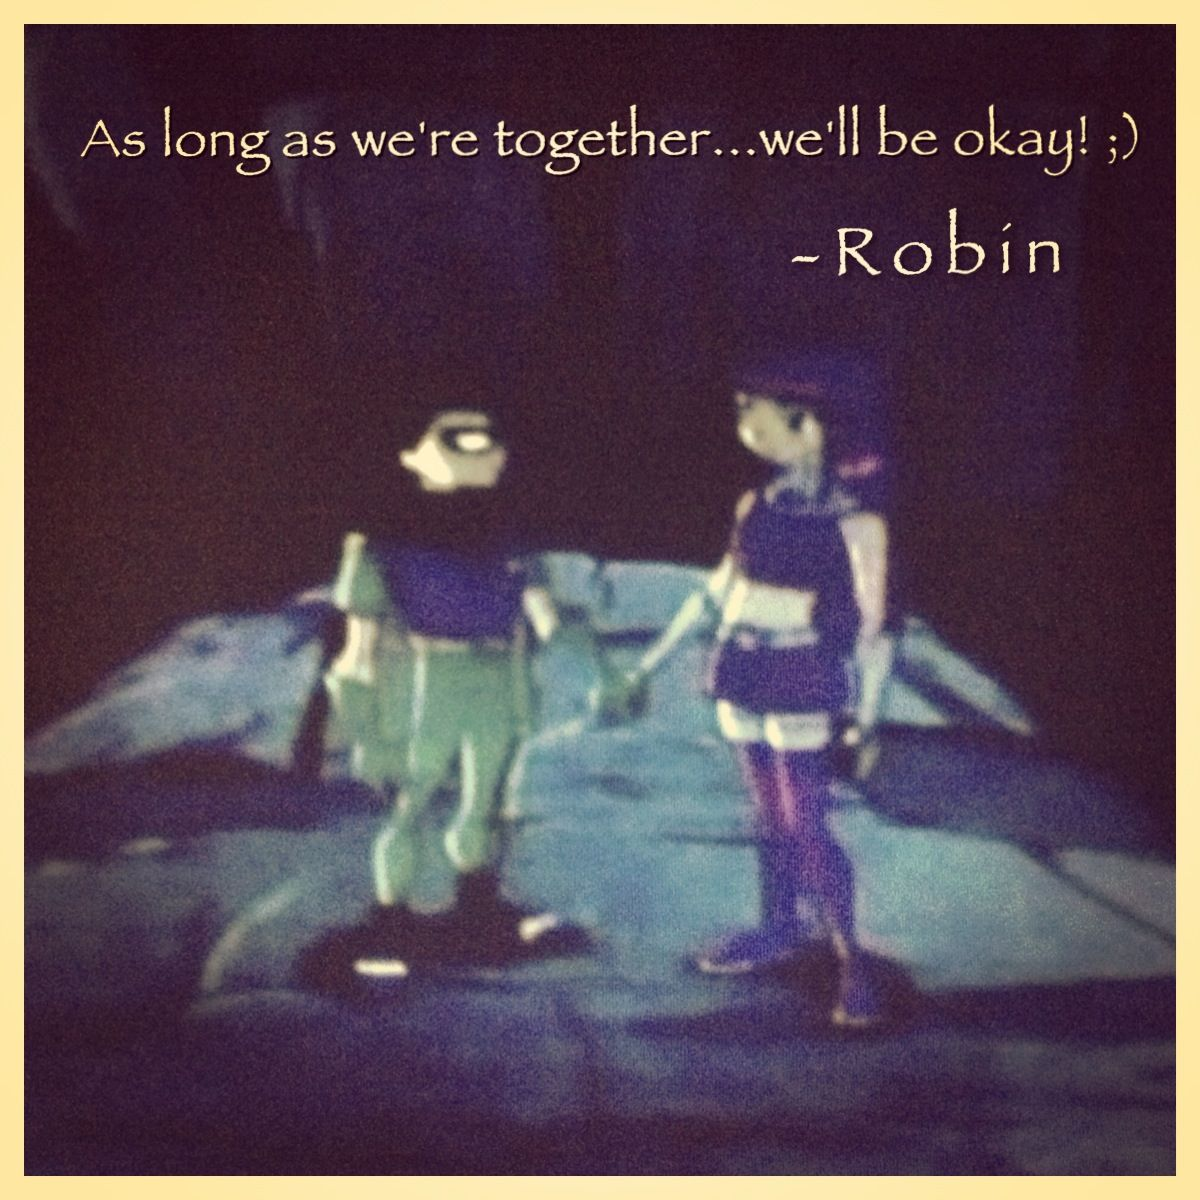 Teen Titans Robin Quote   Quotes, Sayings, And Lyrics -8508